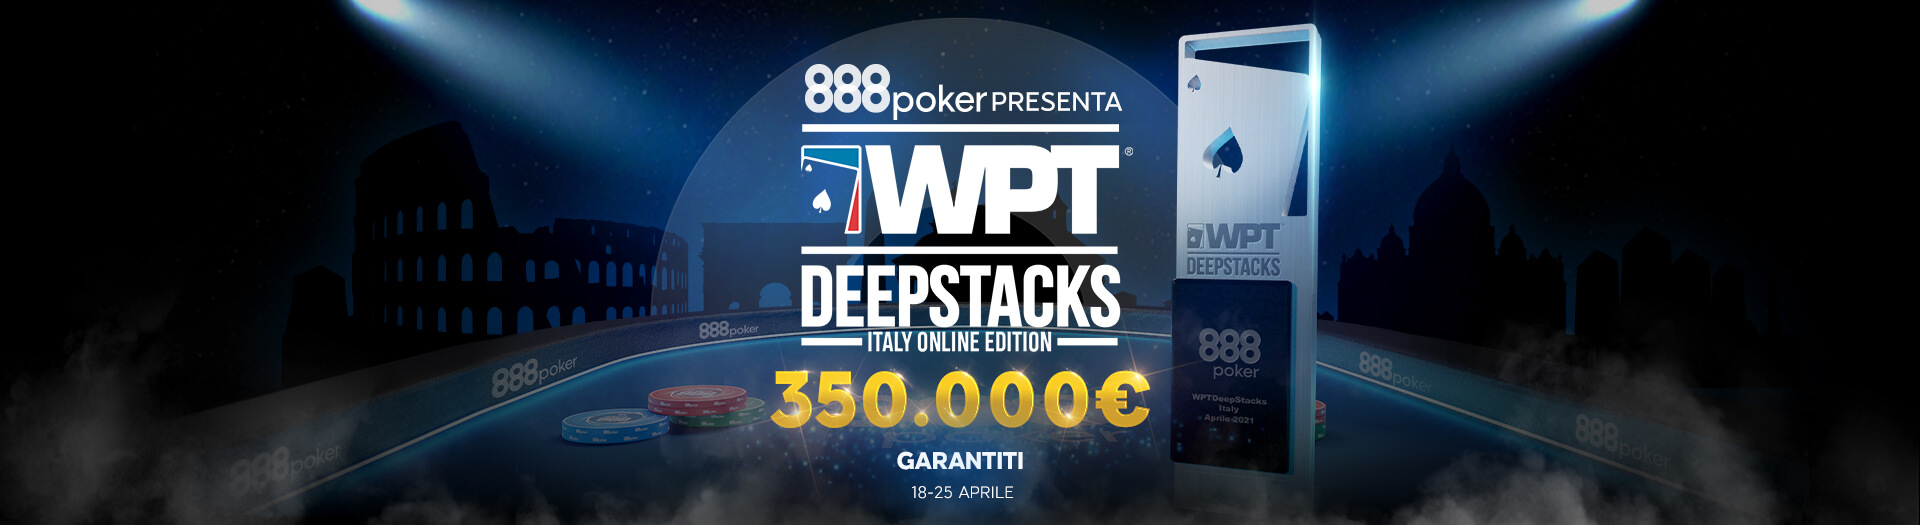 Wide WPTDS Italy